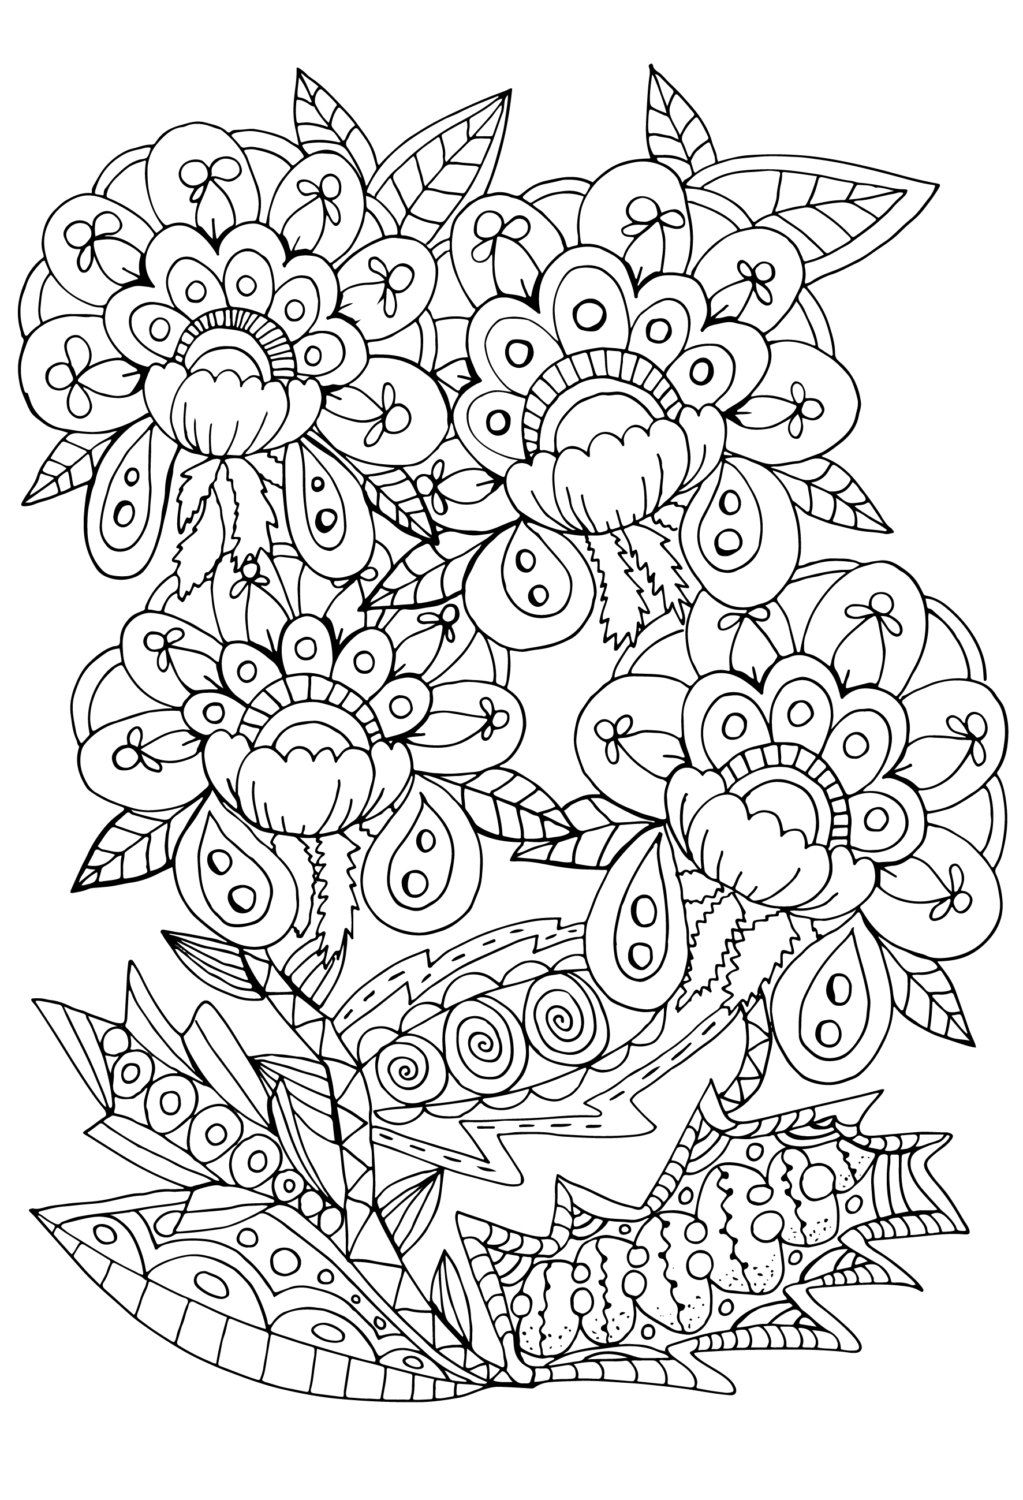 Coloring Pages for Adult, Adult Coloring Pages, Adult Coloring ...